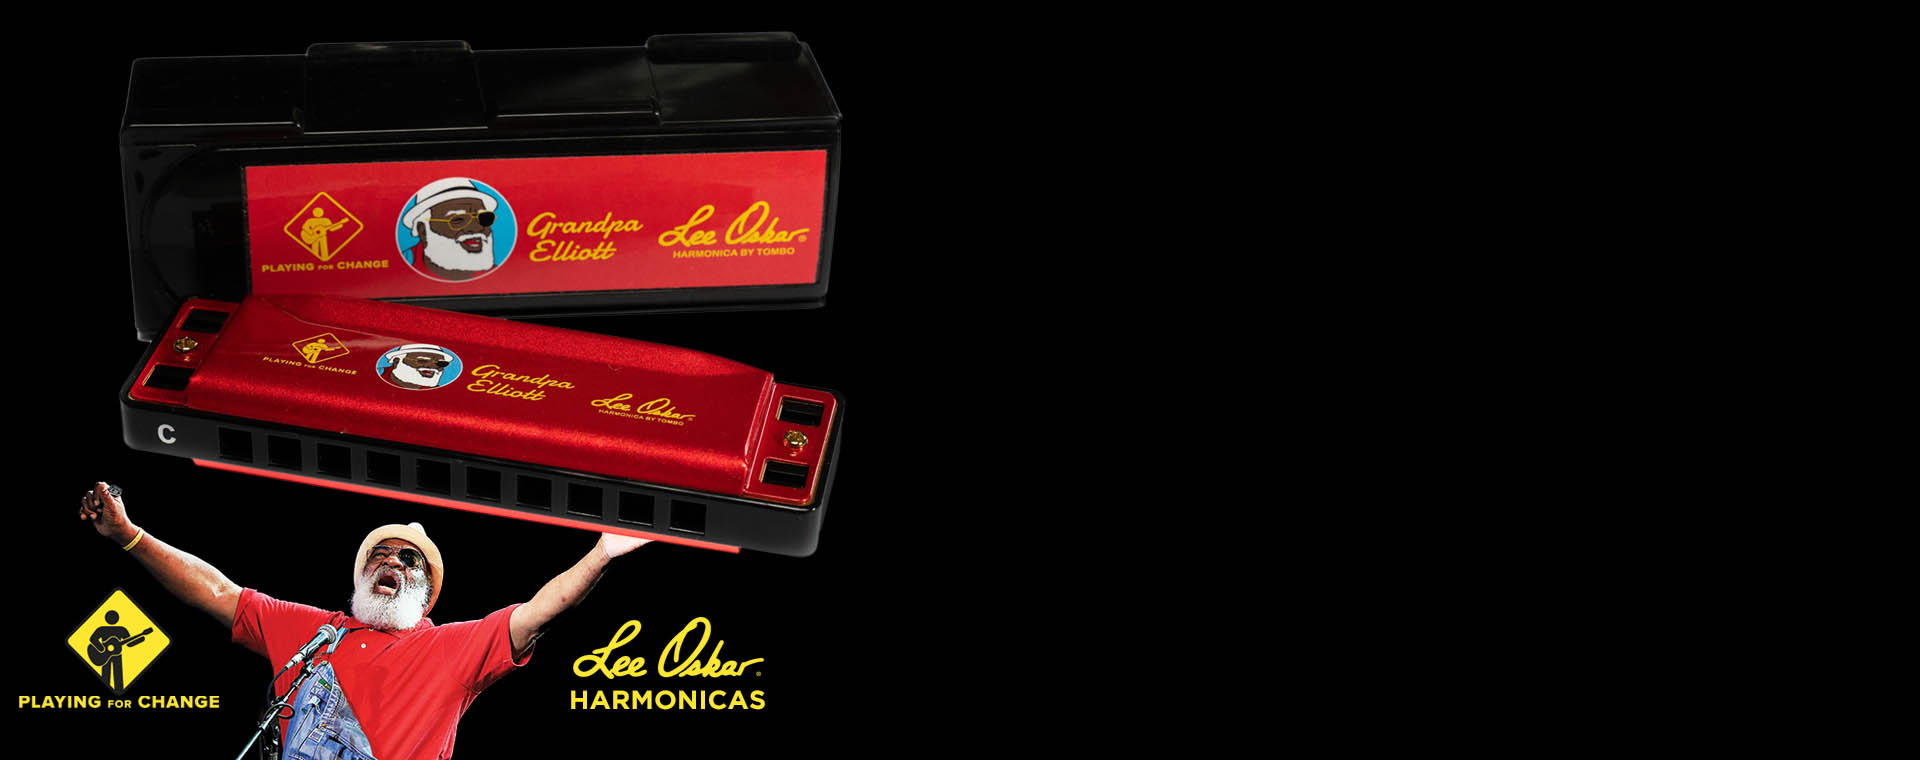 Limited Edition Grandpa Elliot Lee Oskar Harmonica Playing For Change